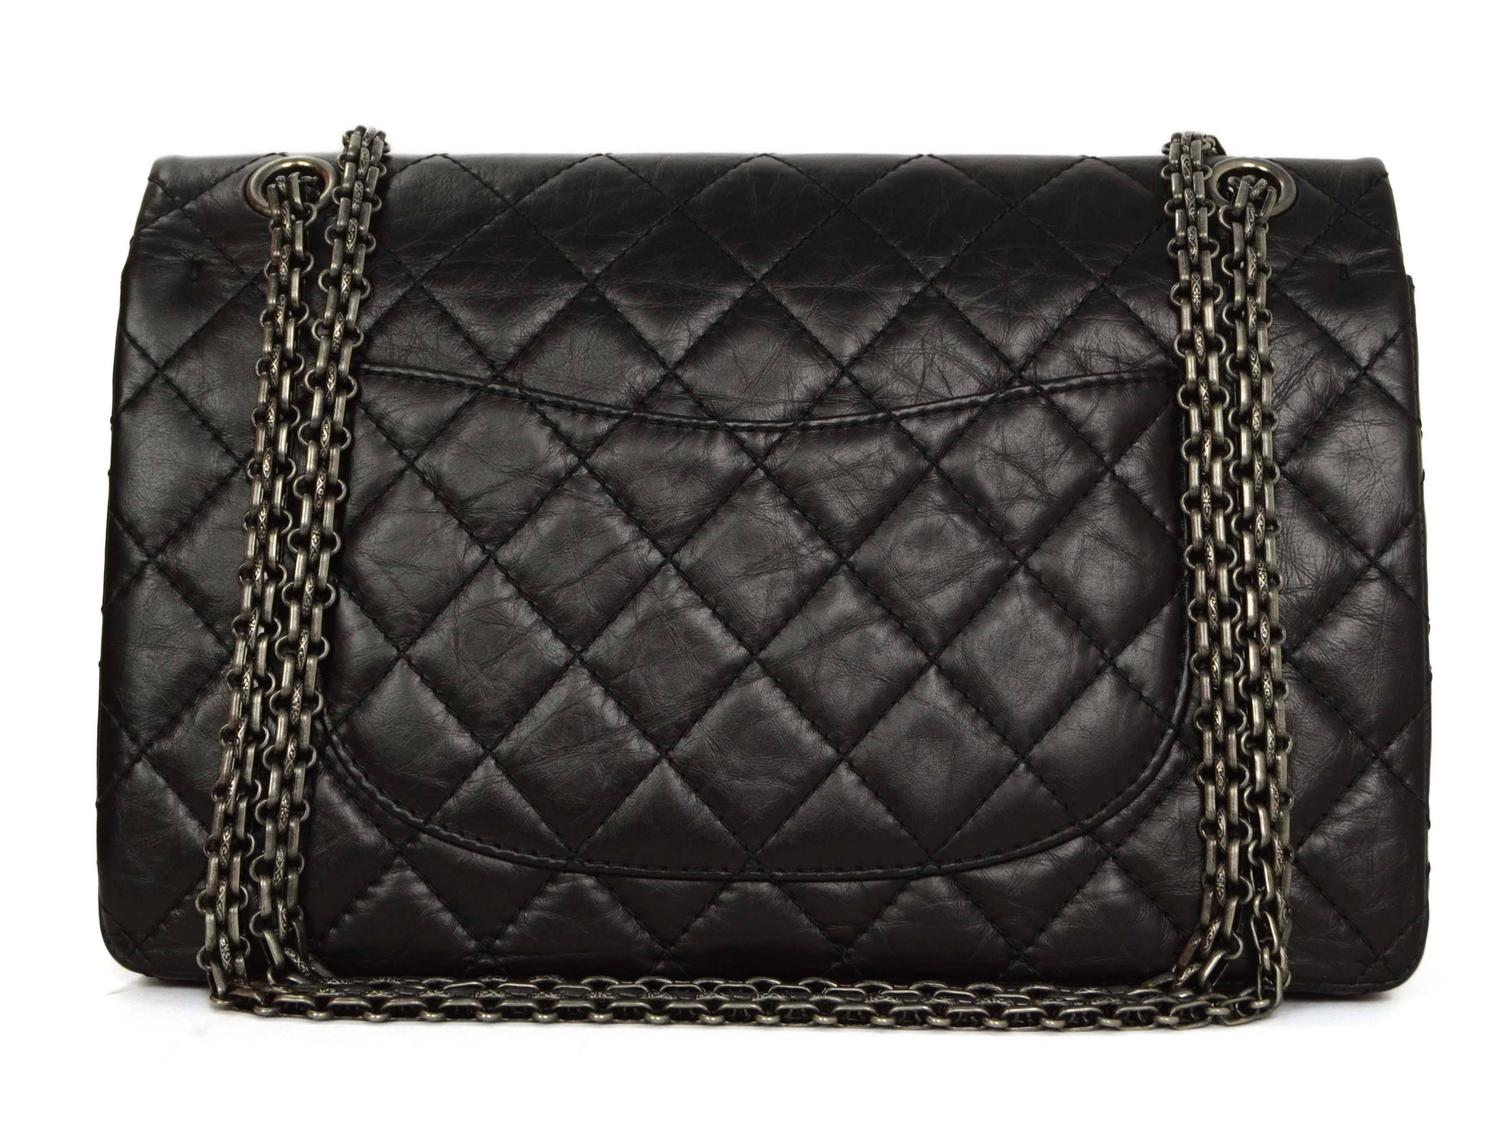 CHANEL SHOULDER BAG, datecode for 2005-6, black leather with stitched ...